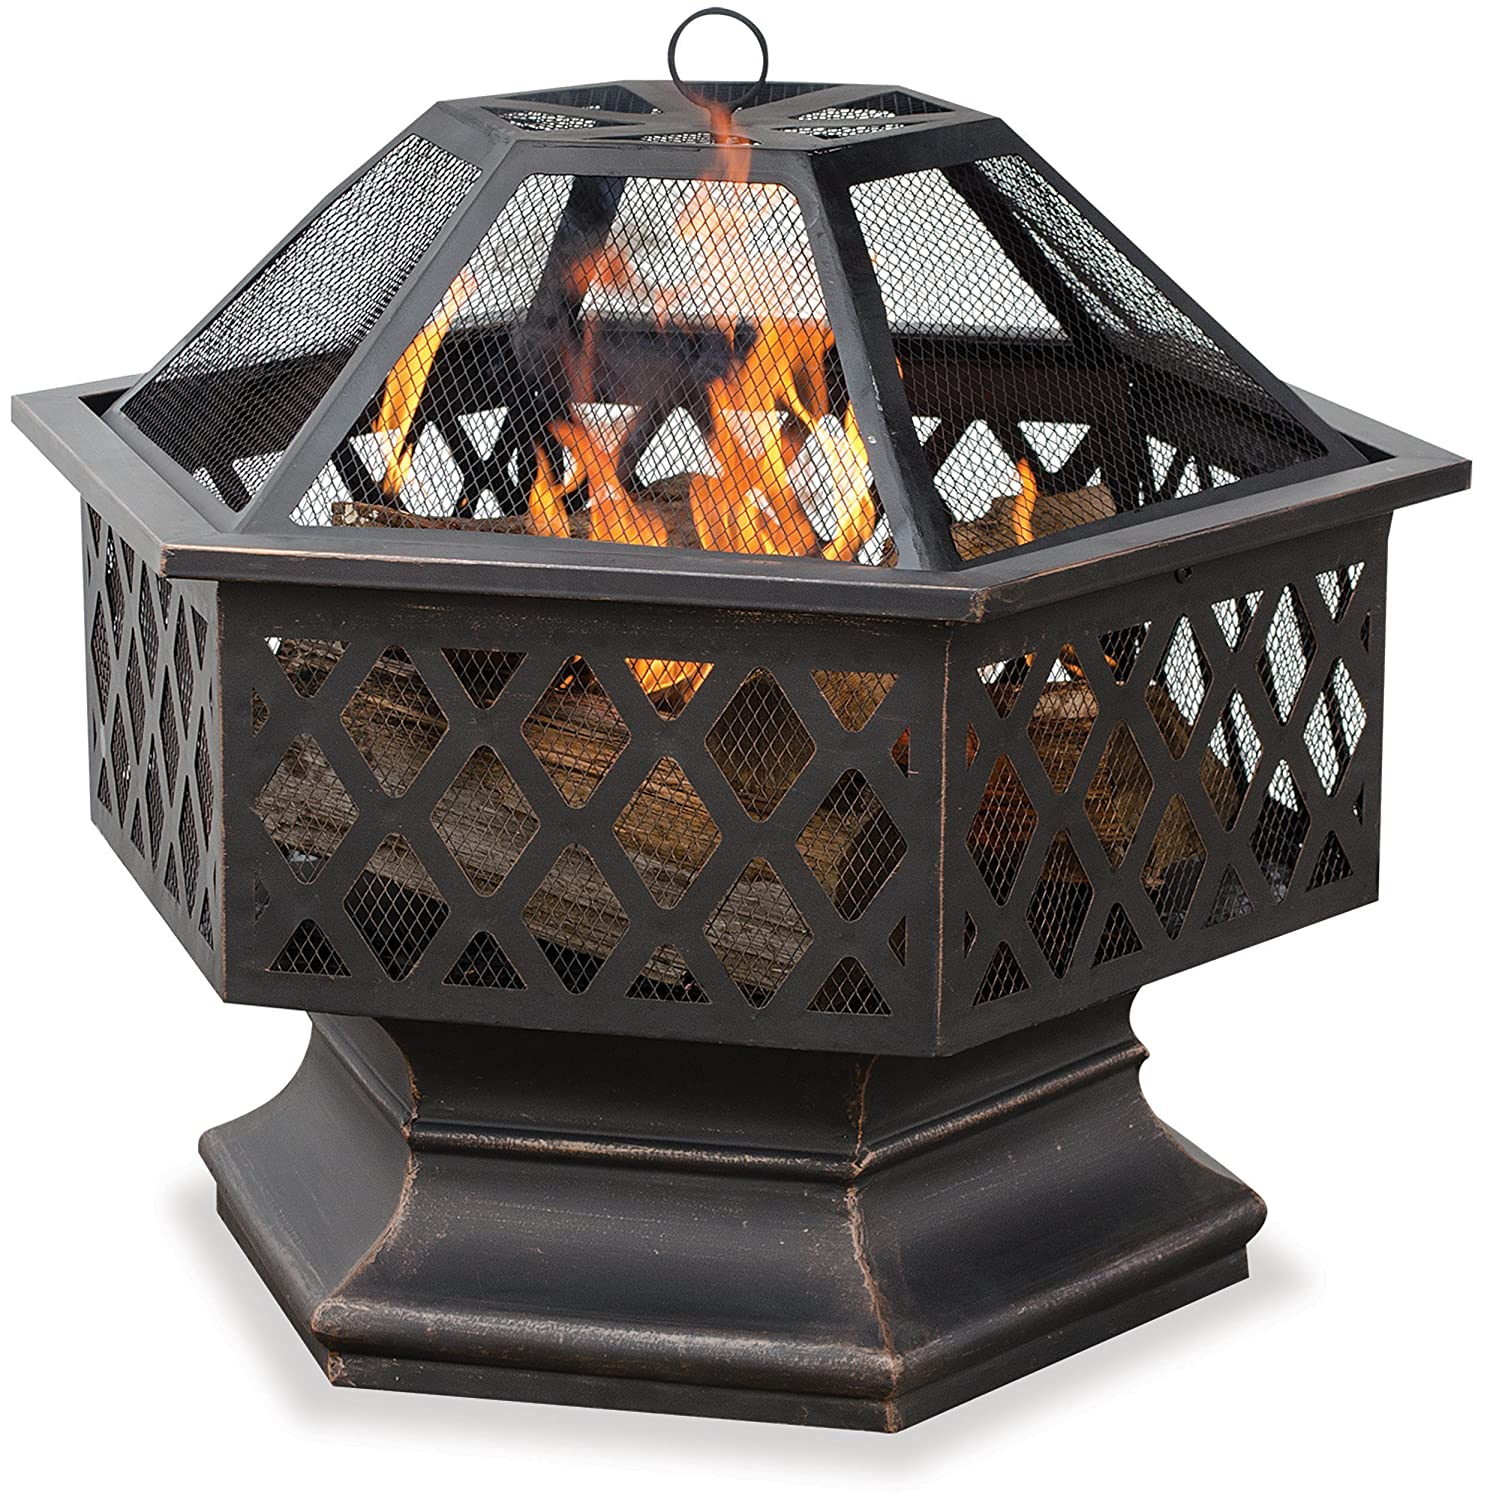 58% Off Outdoor Fire Bowl - ON...